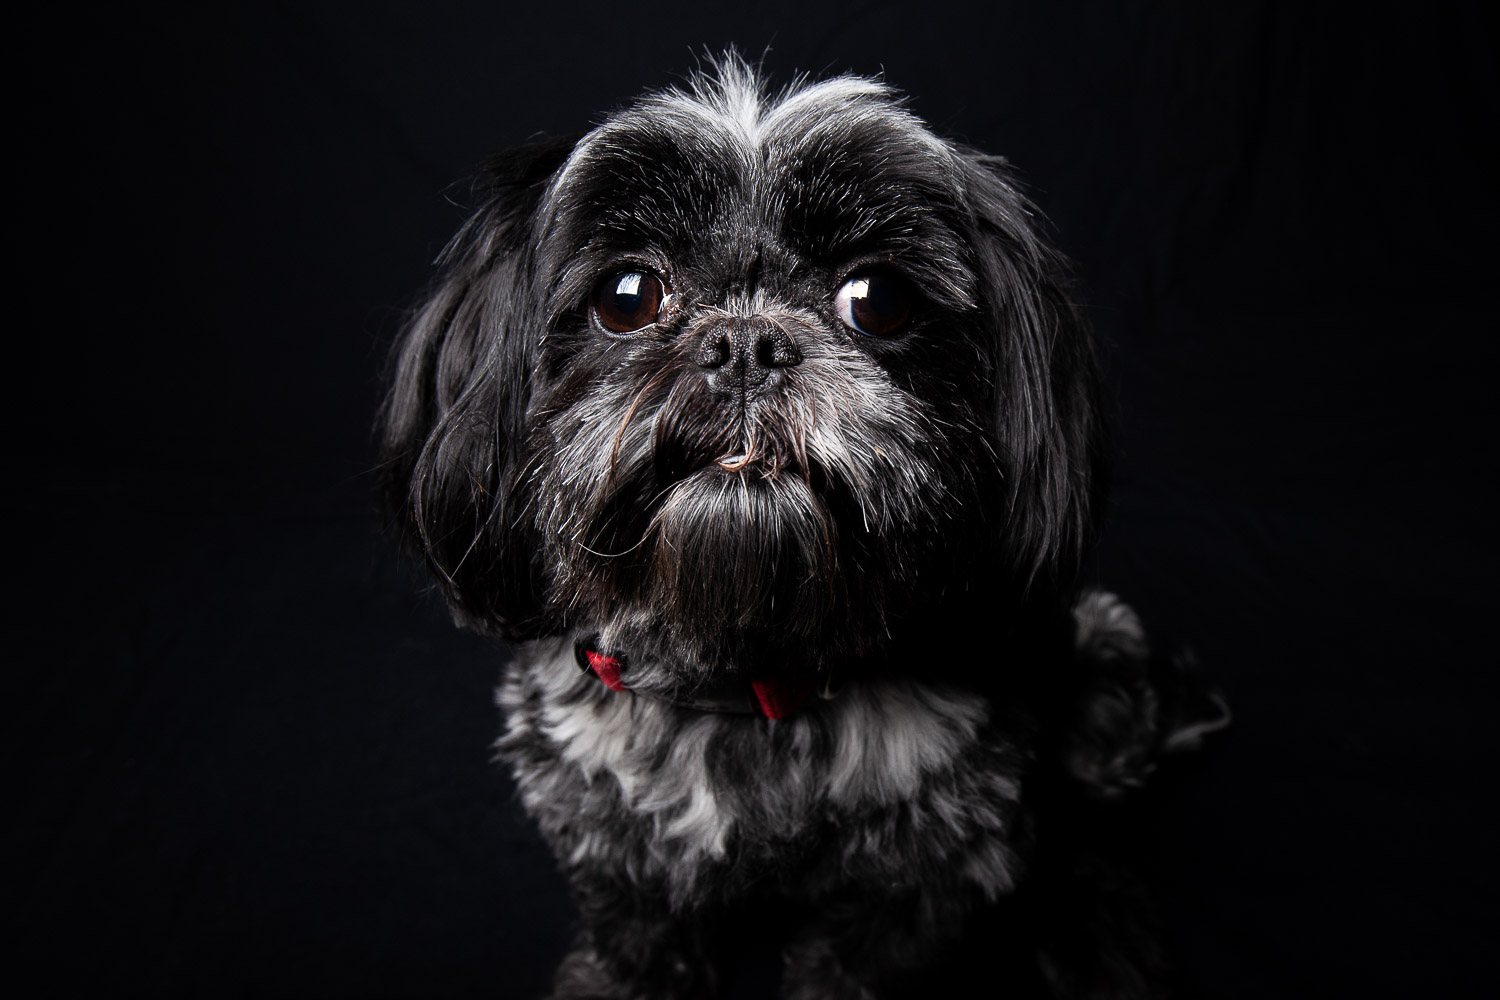 Ivy the Dog-6961RETOUCHED-FORWEB.jpg